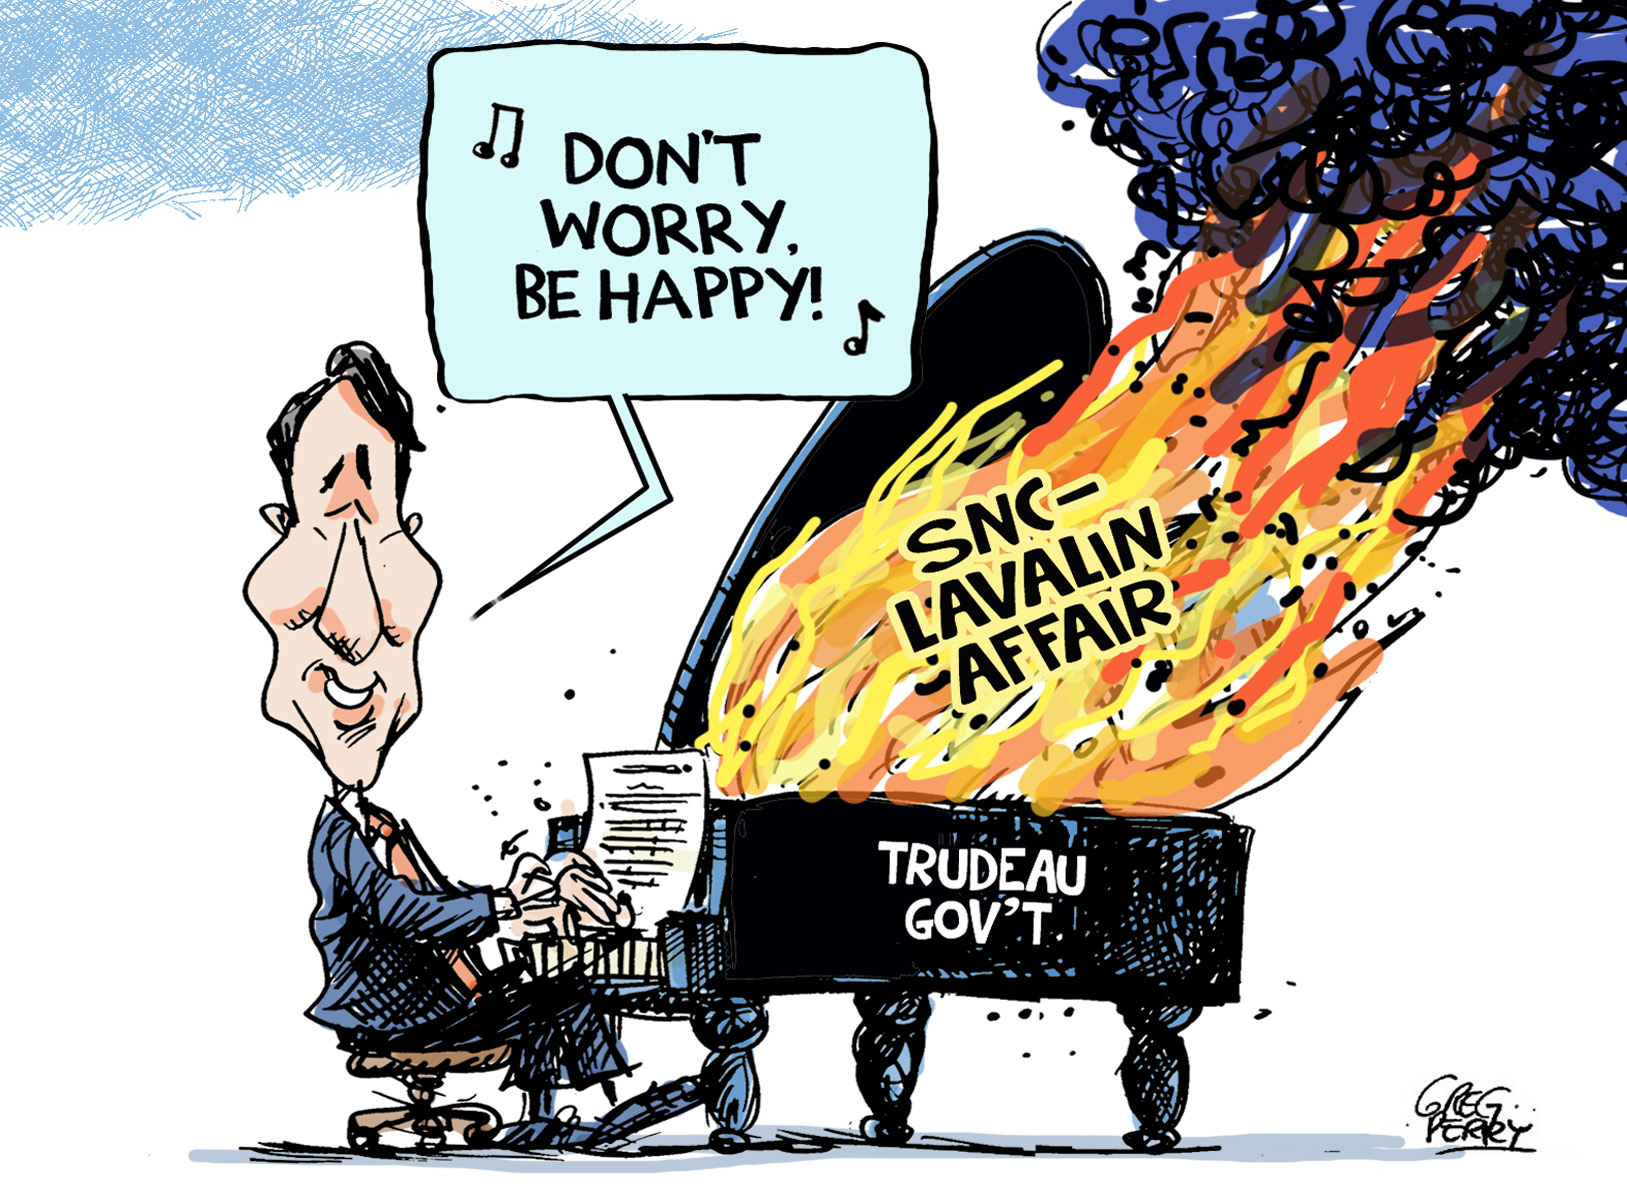 Trudeau LavScam cartoon